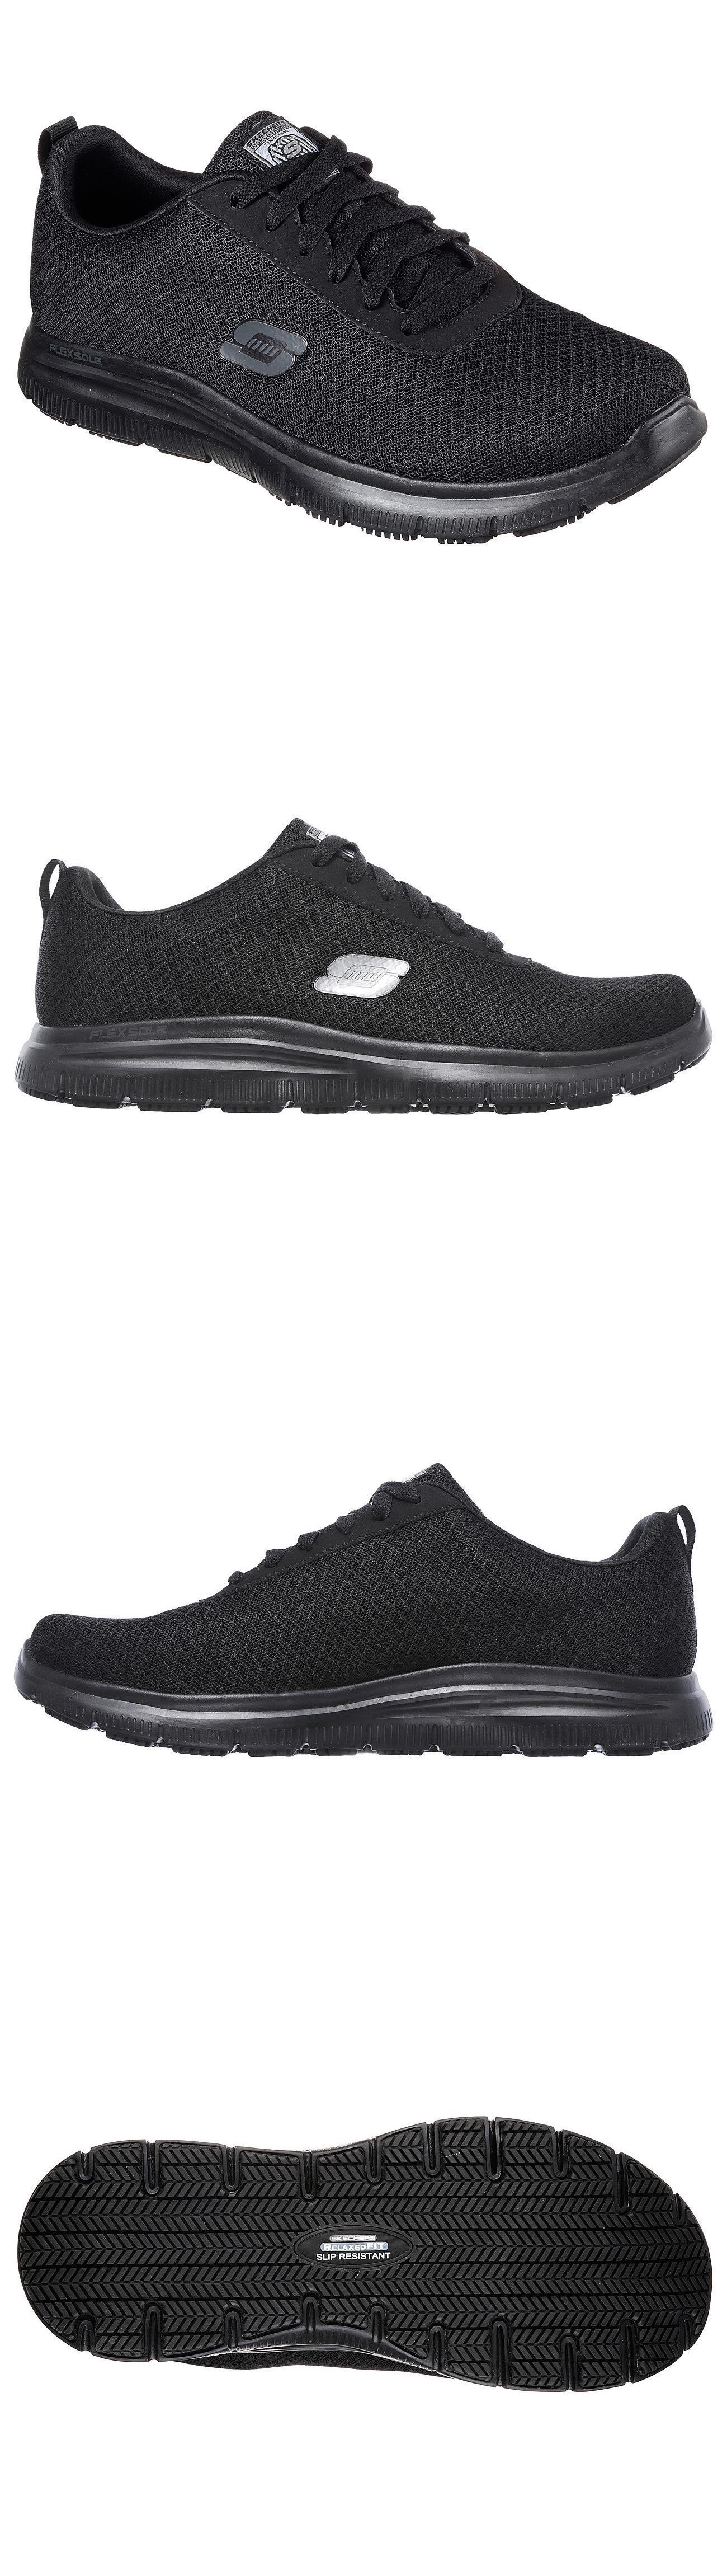 e720fab75a7b70 Occupational 11501: 77125 Black Skechers Shoes Work Men Comfort Mesh Slip  Resistant Memory Foam Lace -> BUY IT NOW ONLY: $59.99 on eBay!